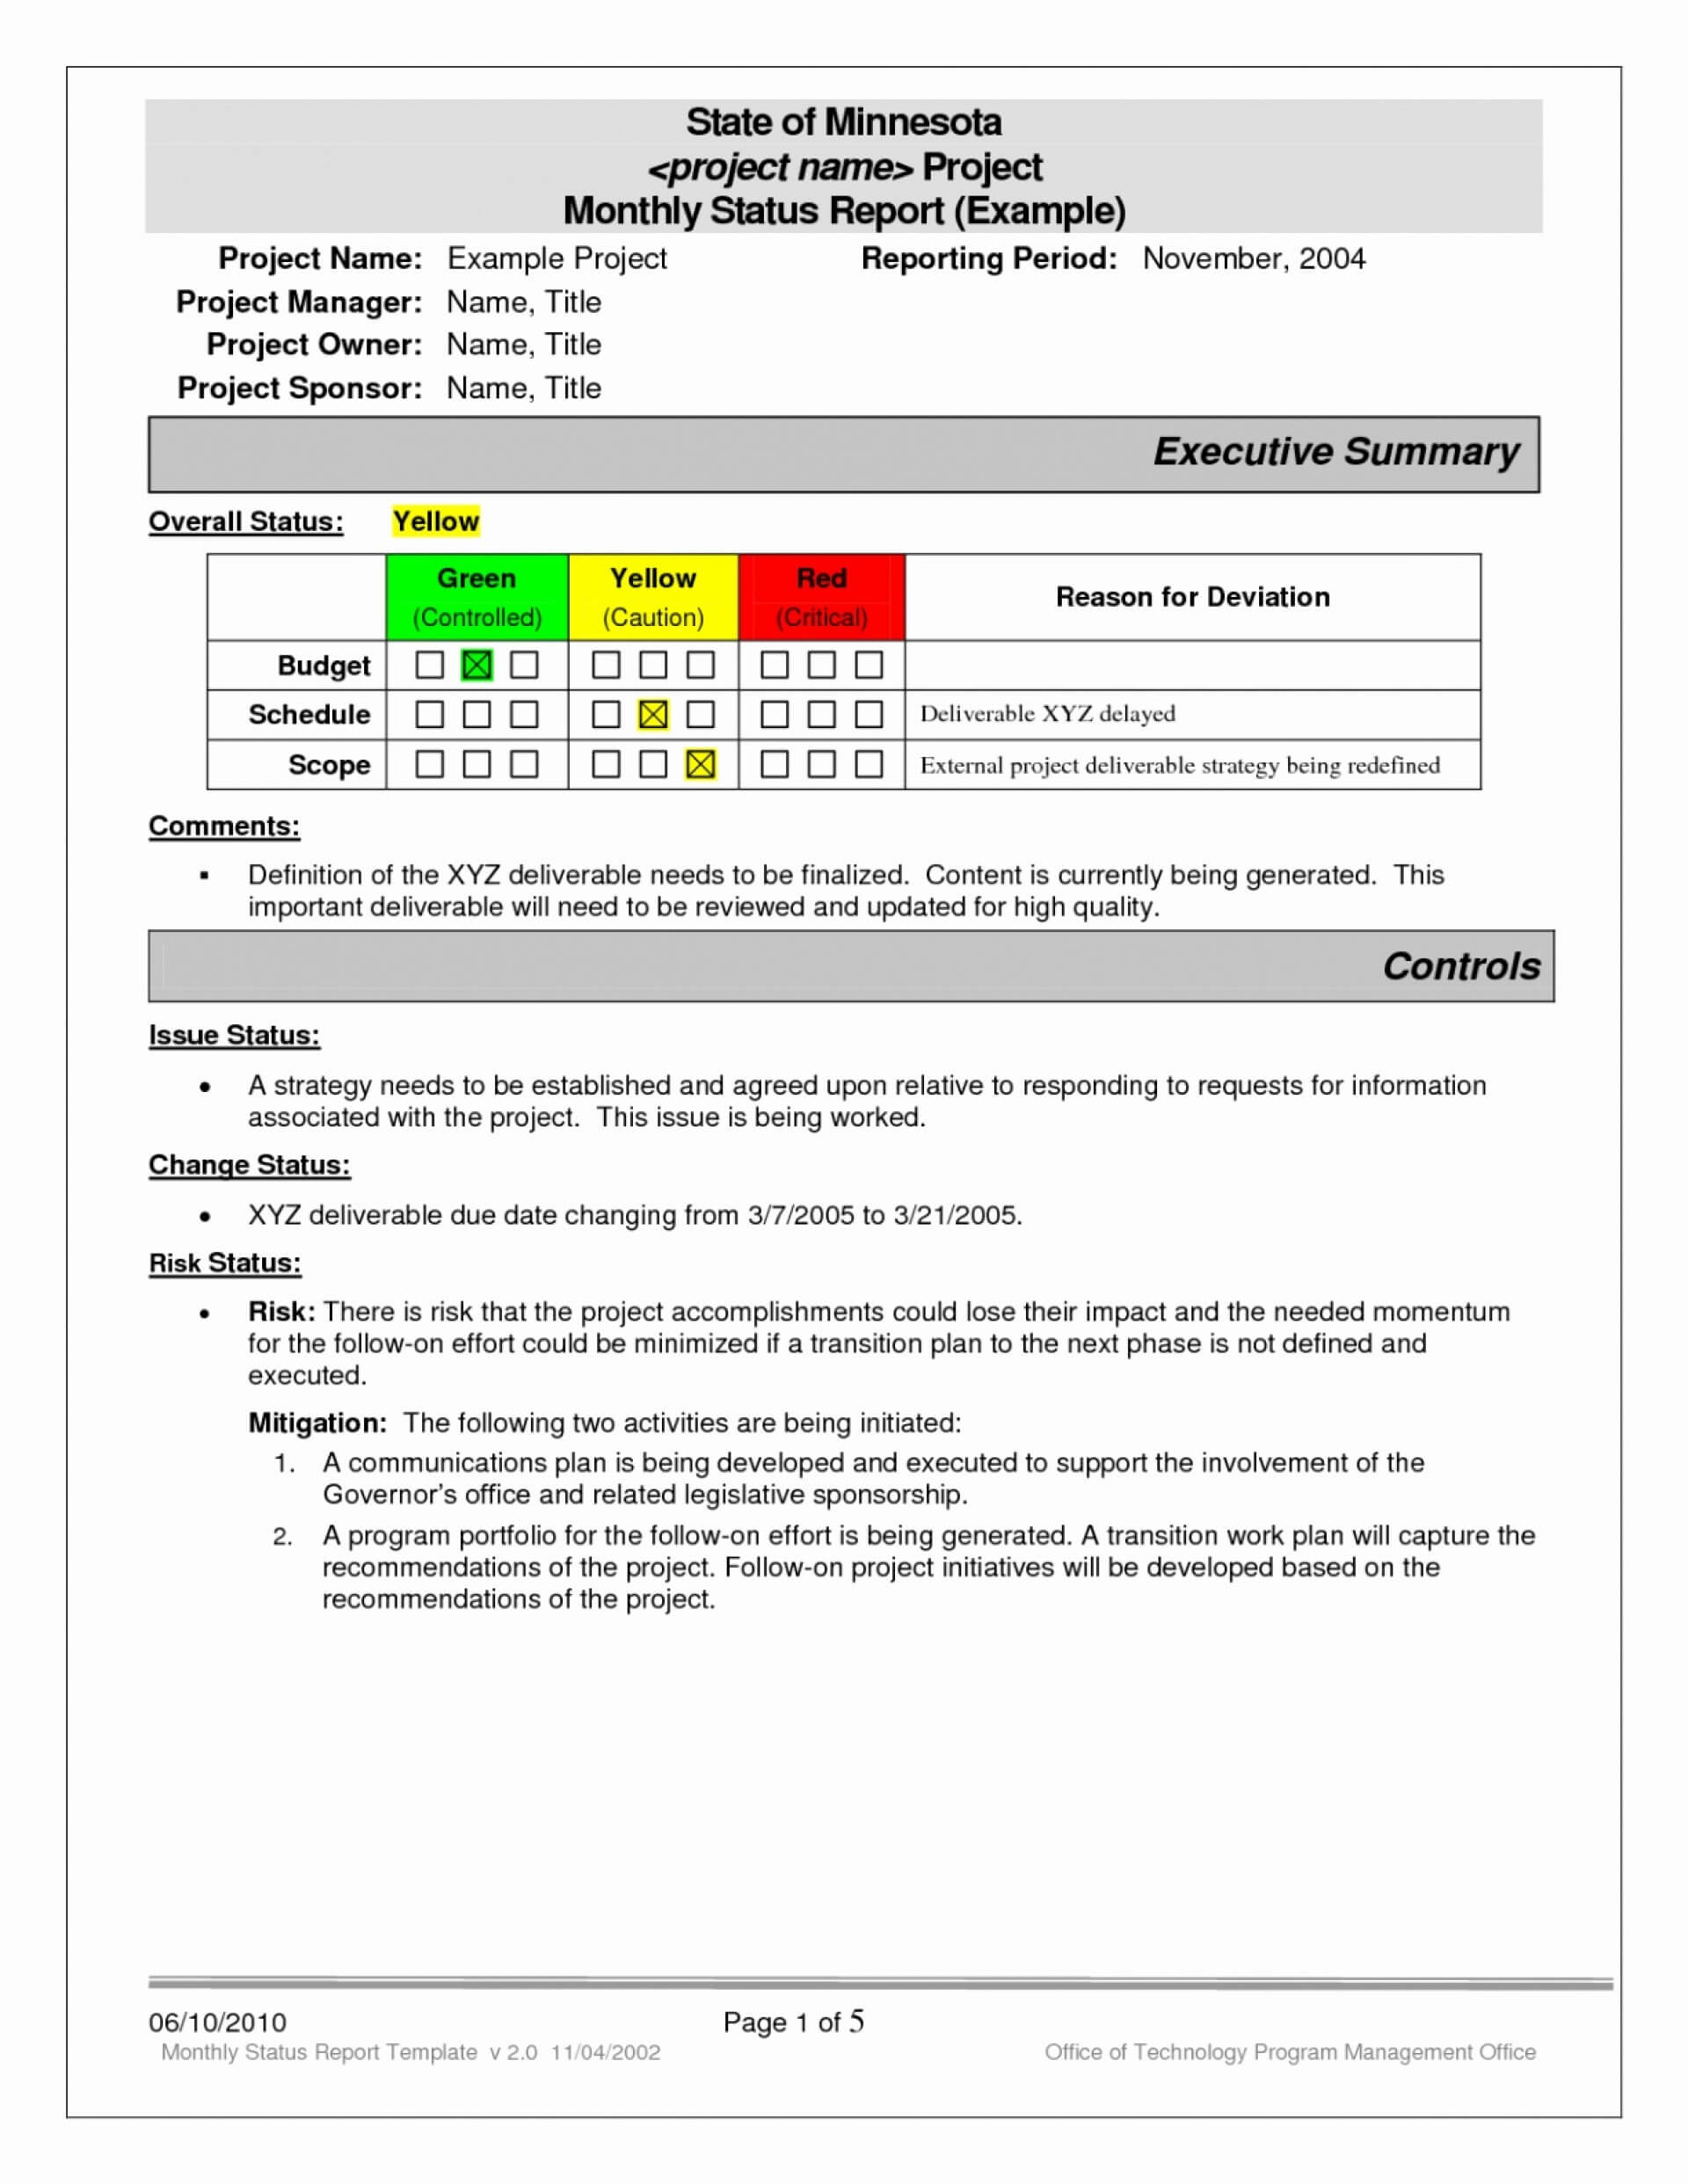 023 Excel Project Status Report Weekly Template 4Vy49Mzf With Software Testing Weekly Status Report Template